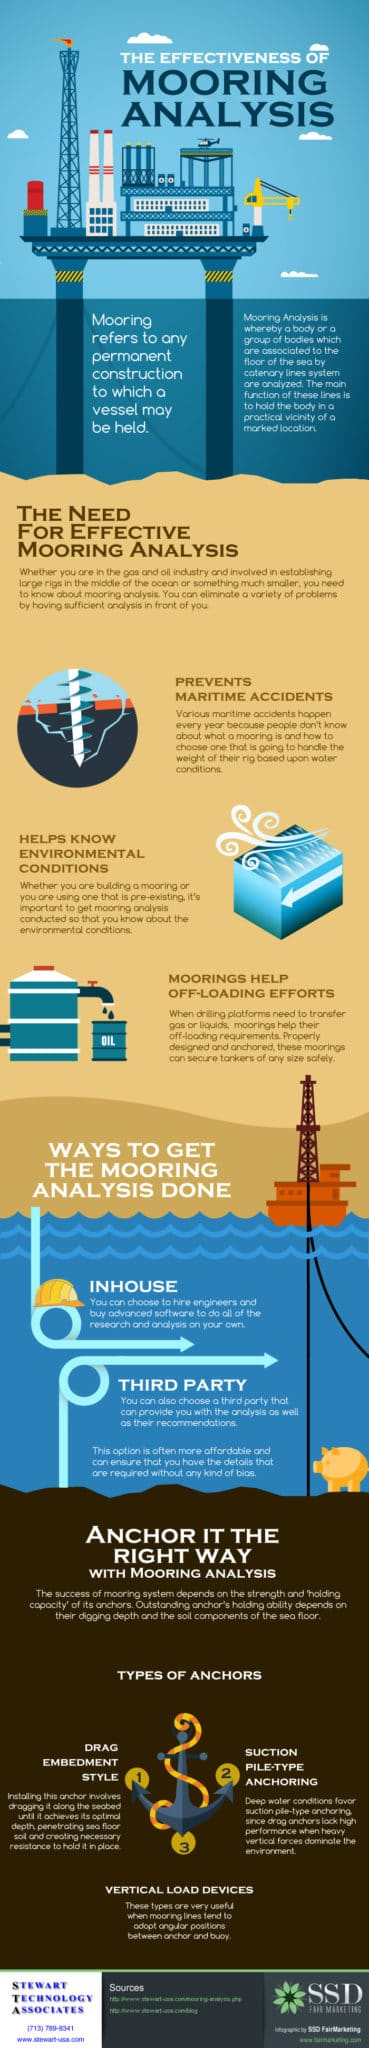 mooring-analysis-infographic-september-2014